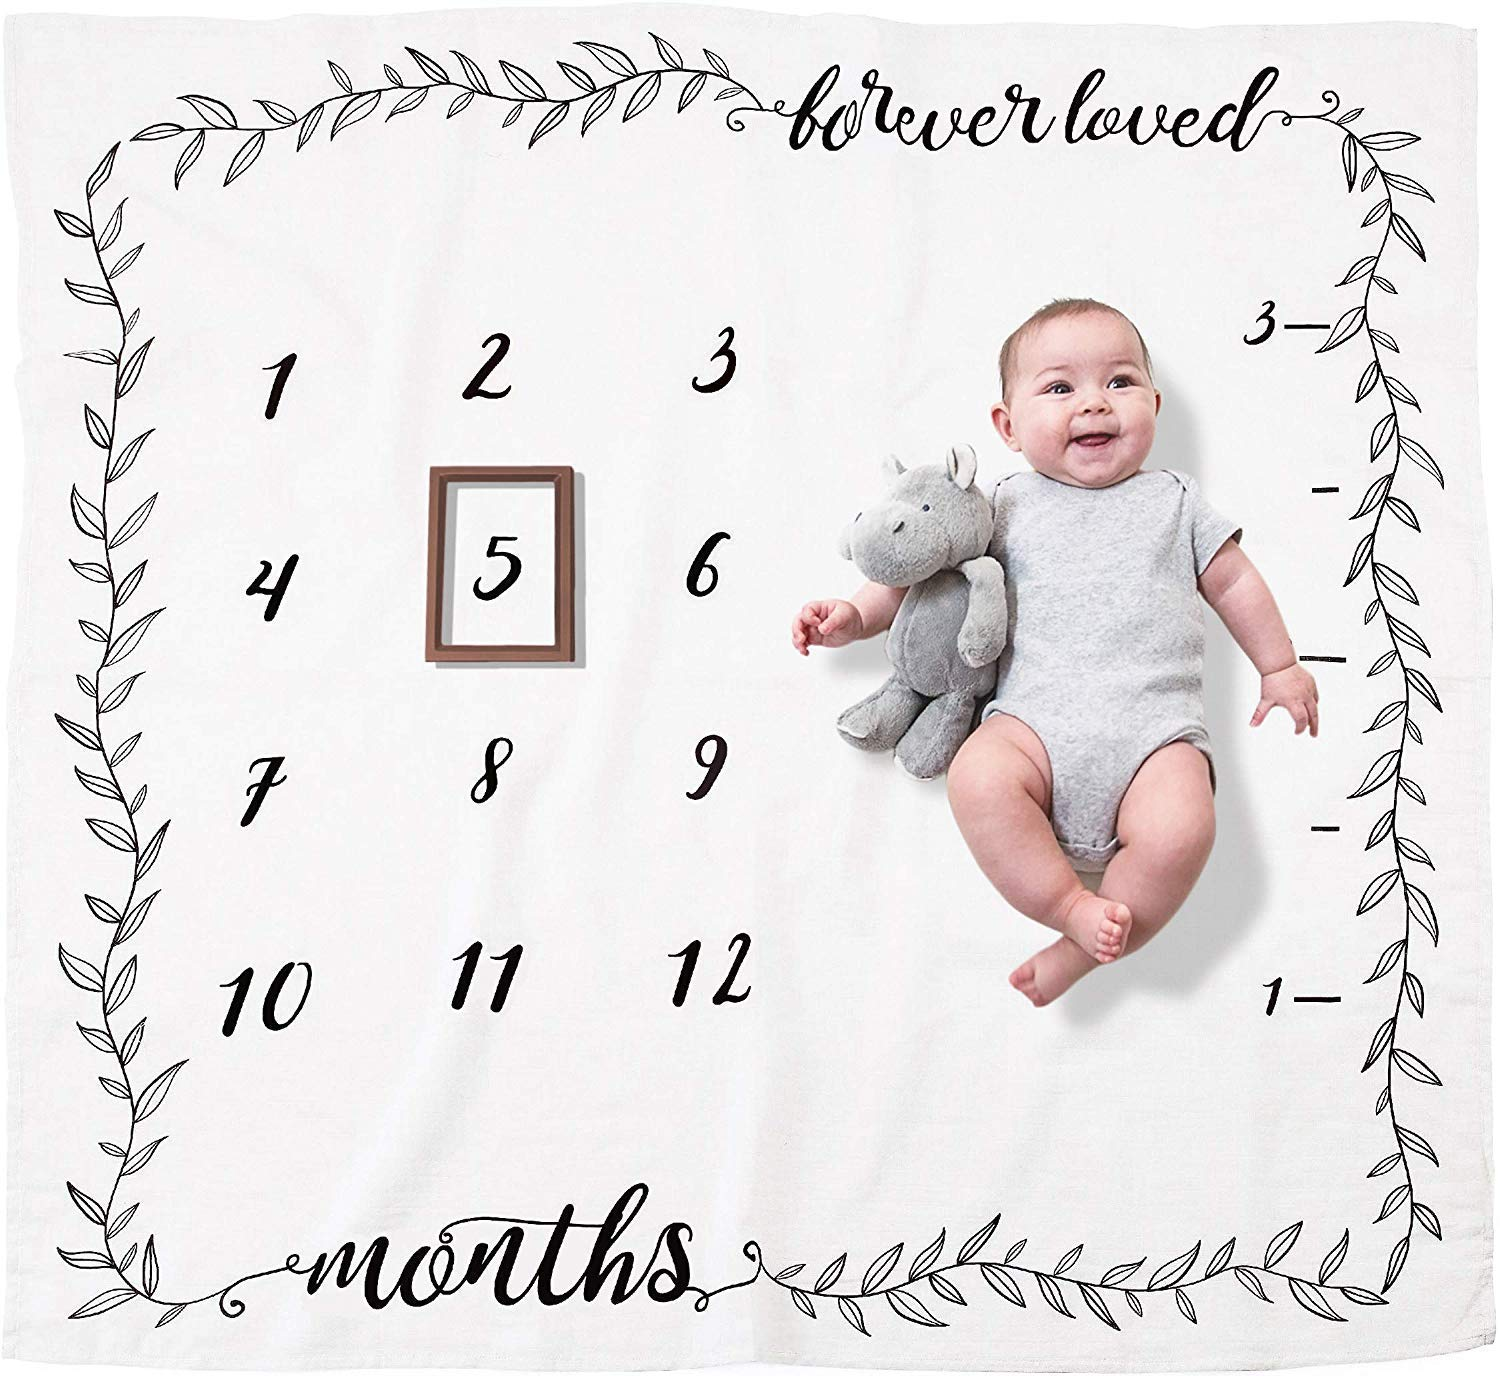 Pondering Pine Organic Baby Monthly Milestone Blanket (Forever Loved) for Newborn Girl or Boy | Soft Photography Background Prop | 1 to 12 Months by Pondering Pine